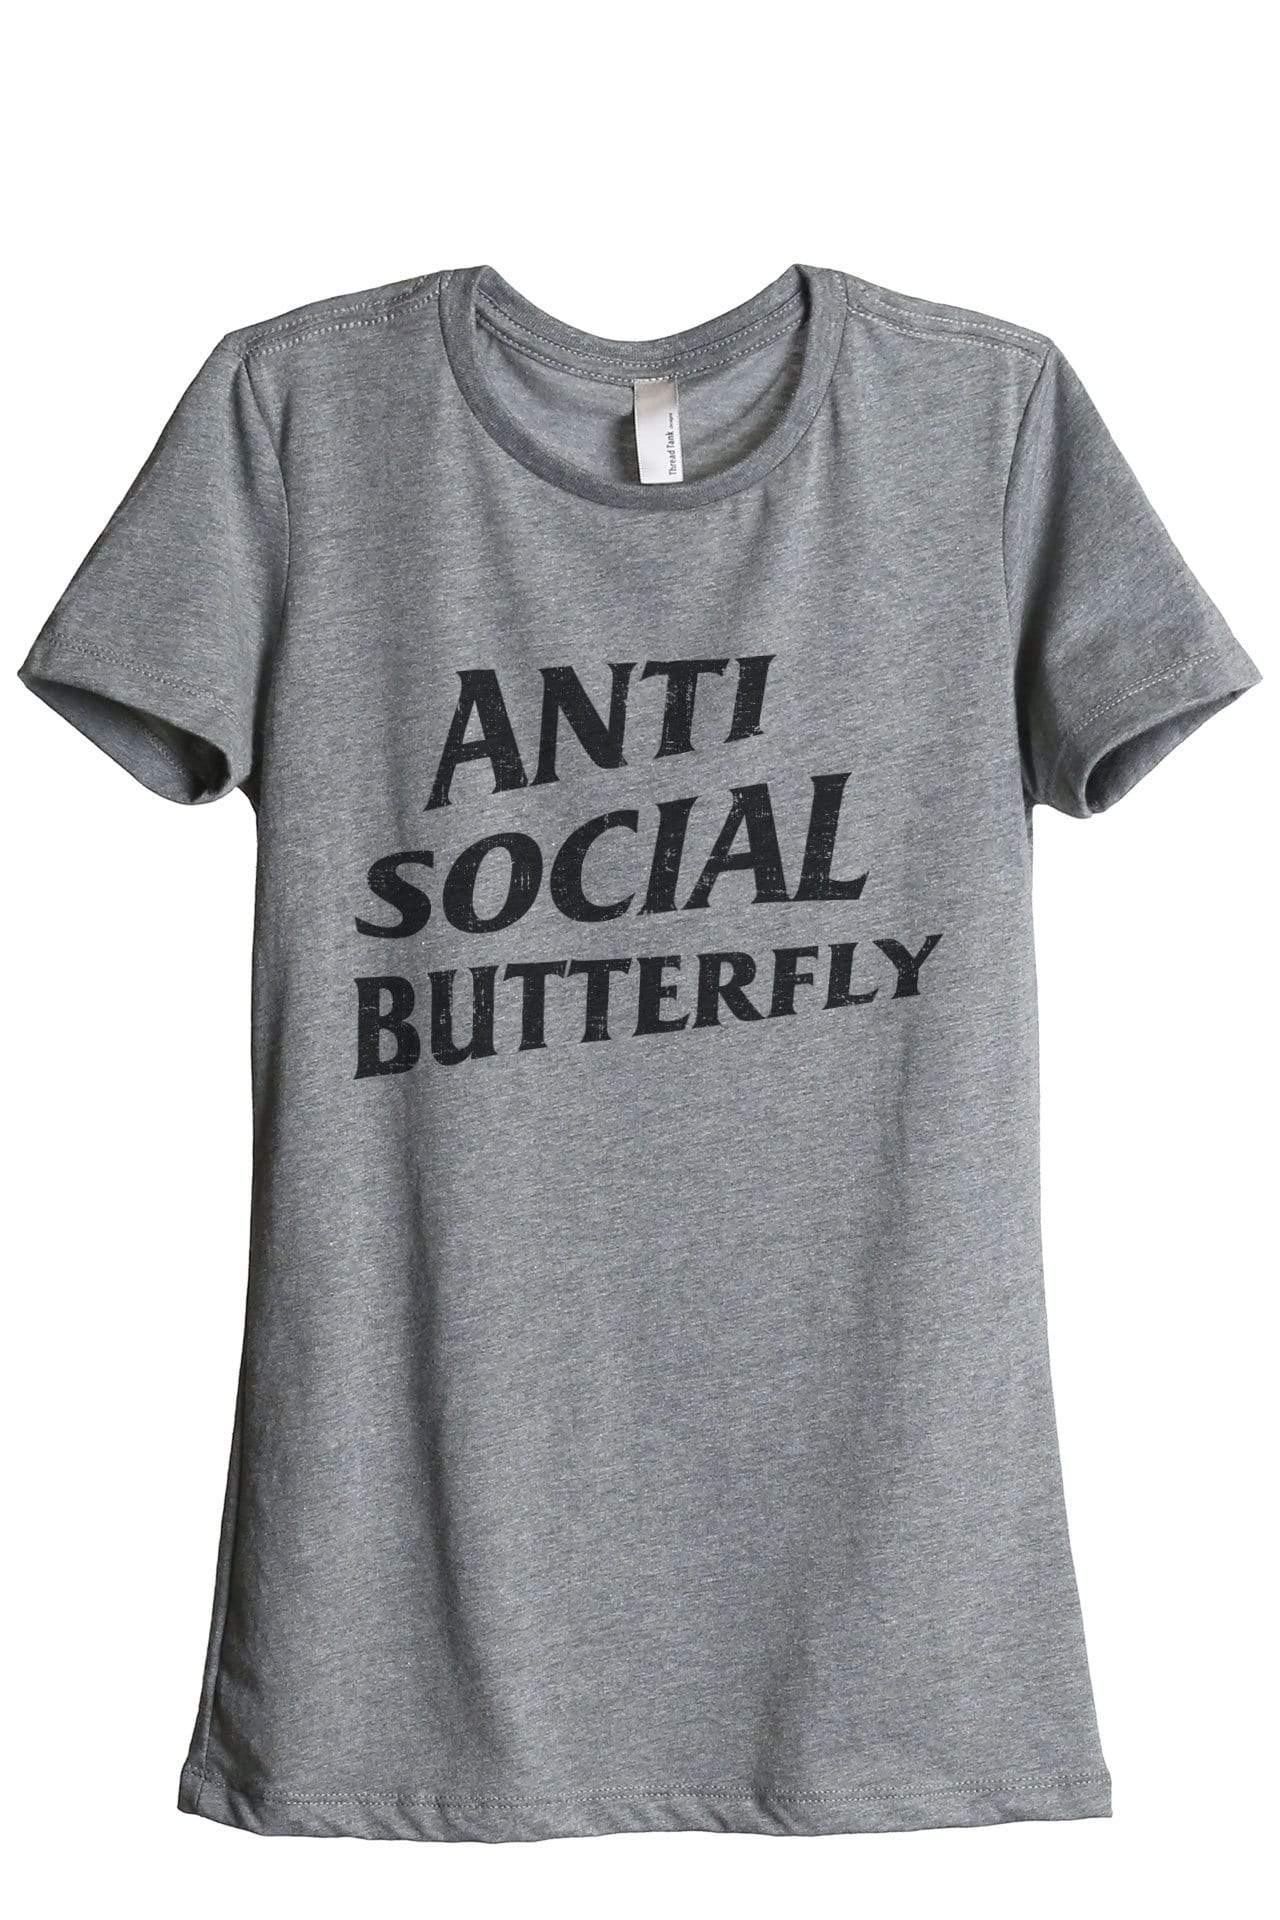 Anti Social Butterfly - Thread Tank | Stories You Can Wear | T-Shirts, Tank Tops and Sweatshirts